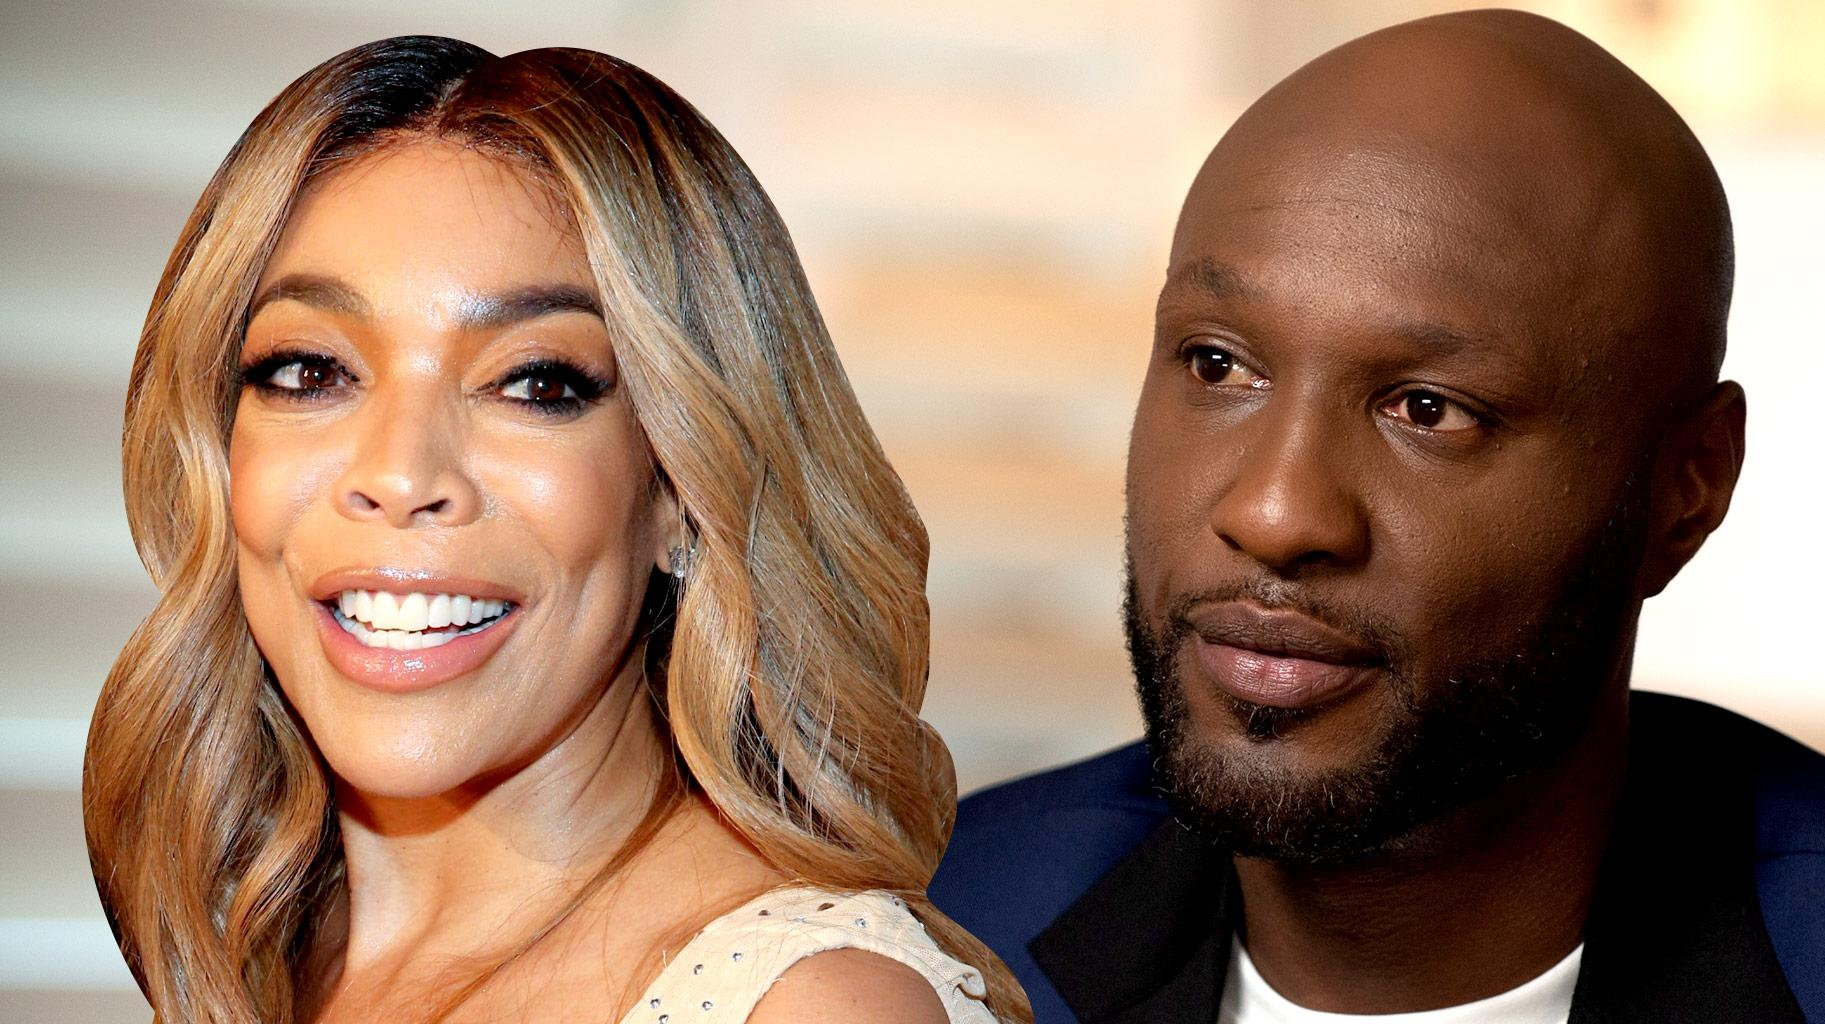 Wendy Williams Thinks Lamar Odom Should Not Have Kids With His New GF Sabrina Parr And Here's Why!